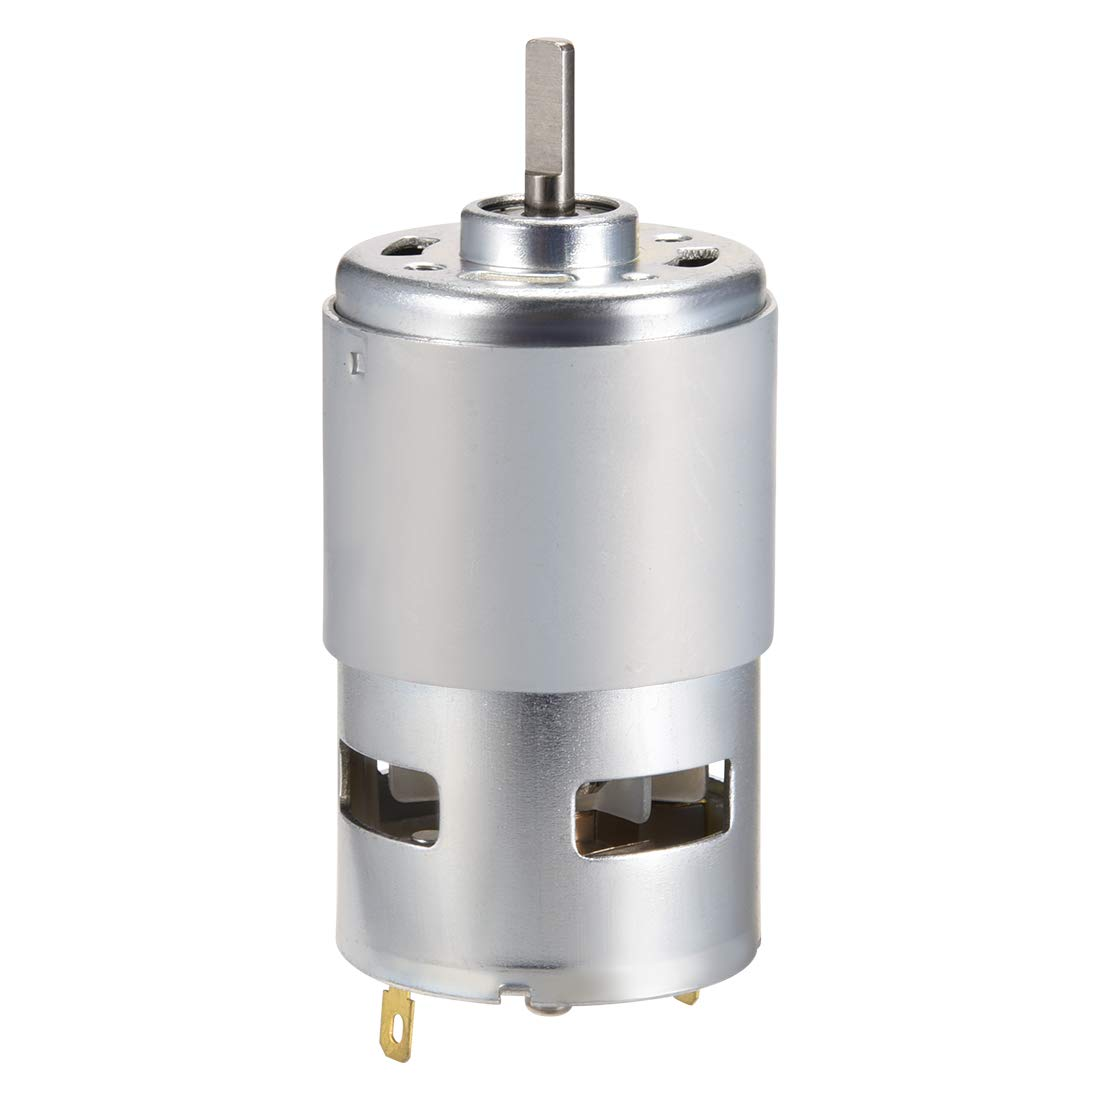 sourcing map Small Motor DC 24V 5500RPM High Speed Motor for DIY Hobby Toy Cars Remote Control